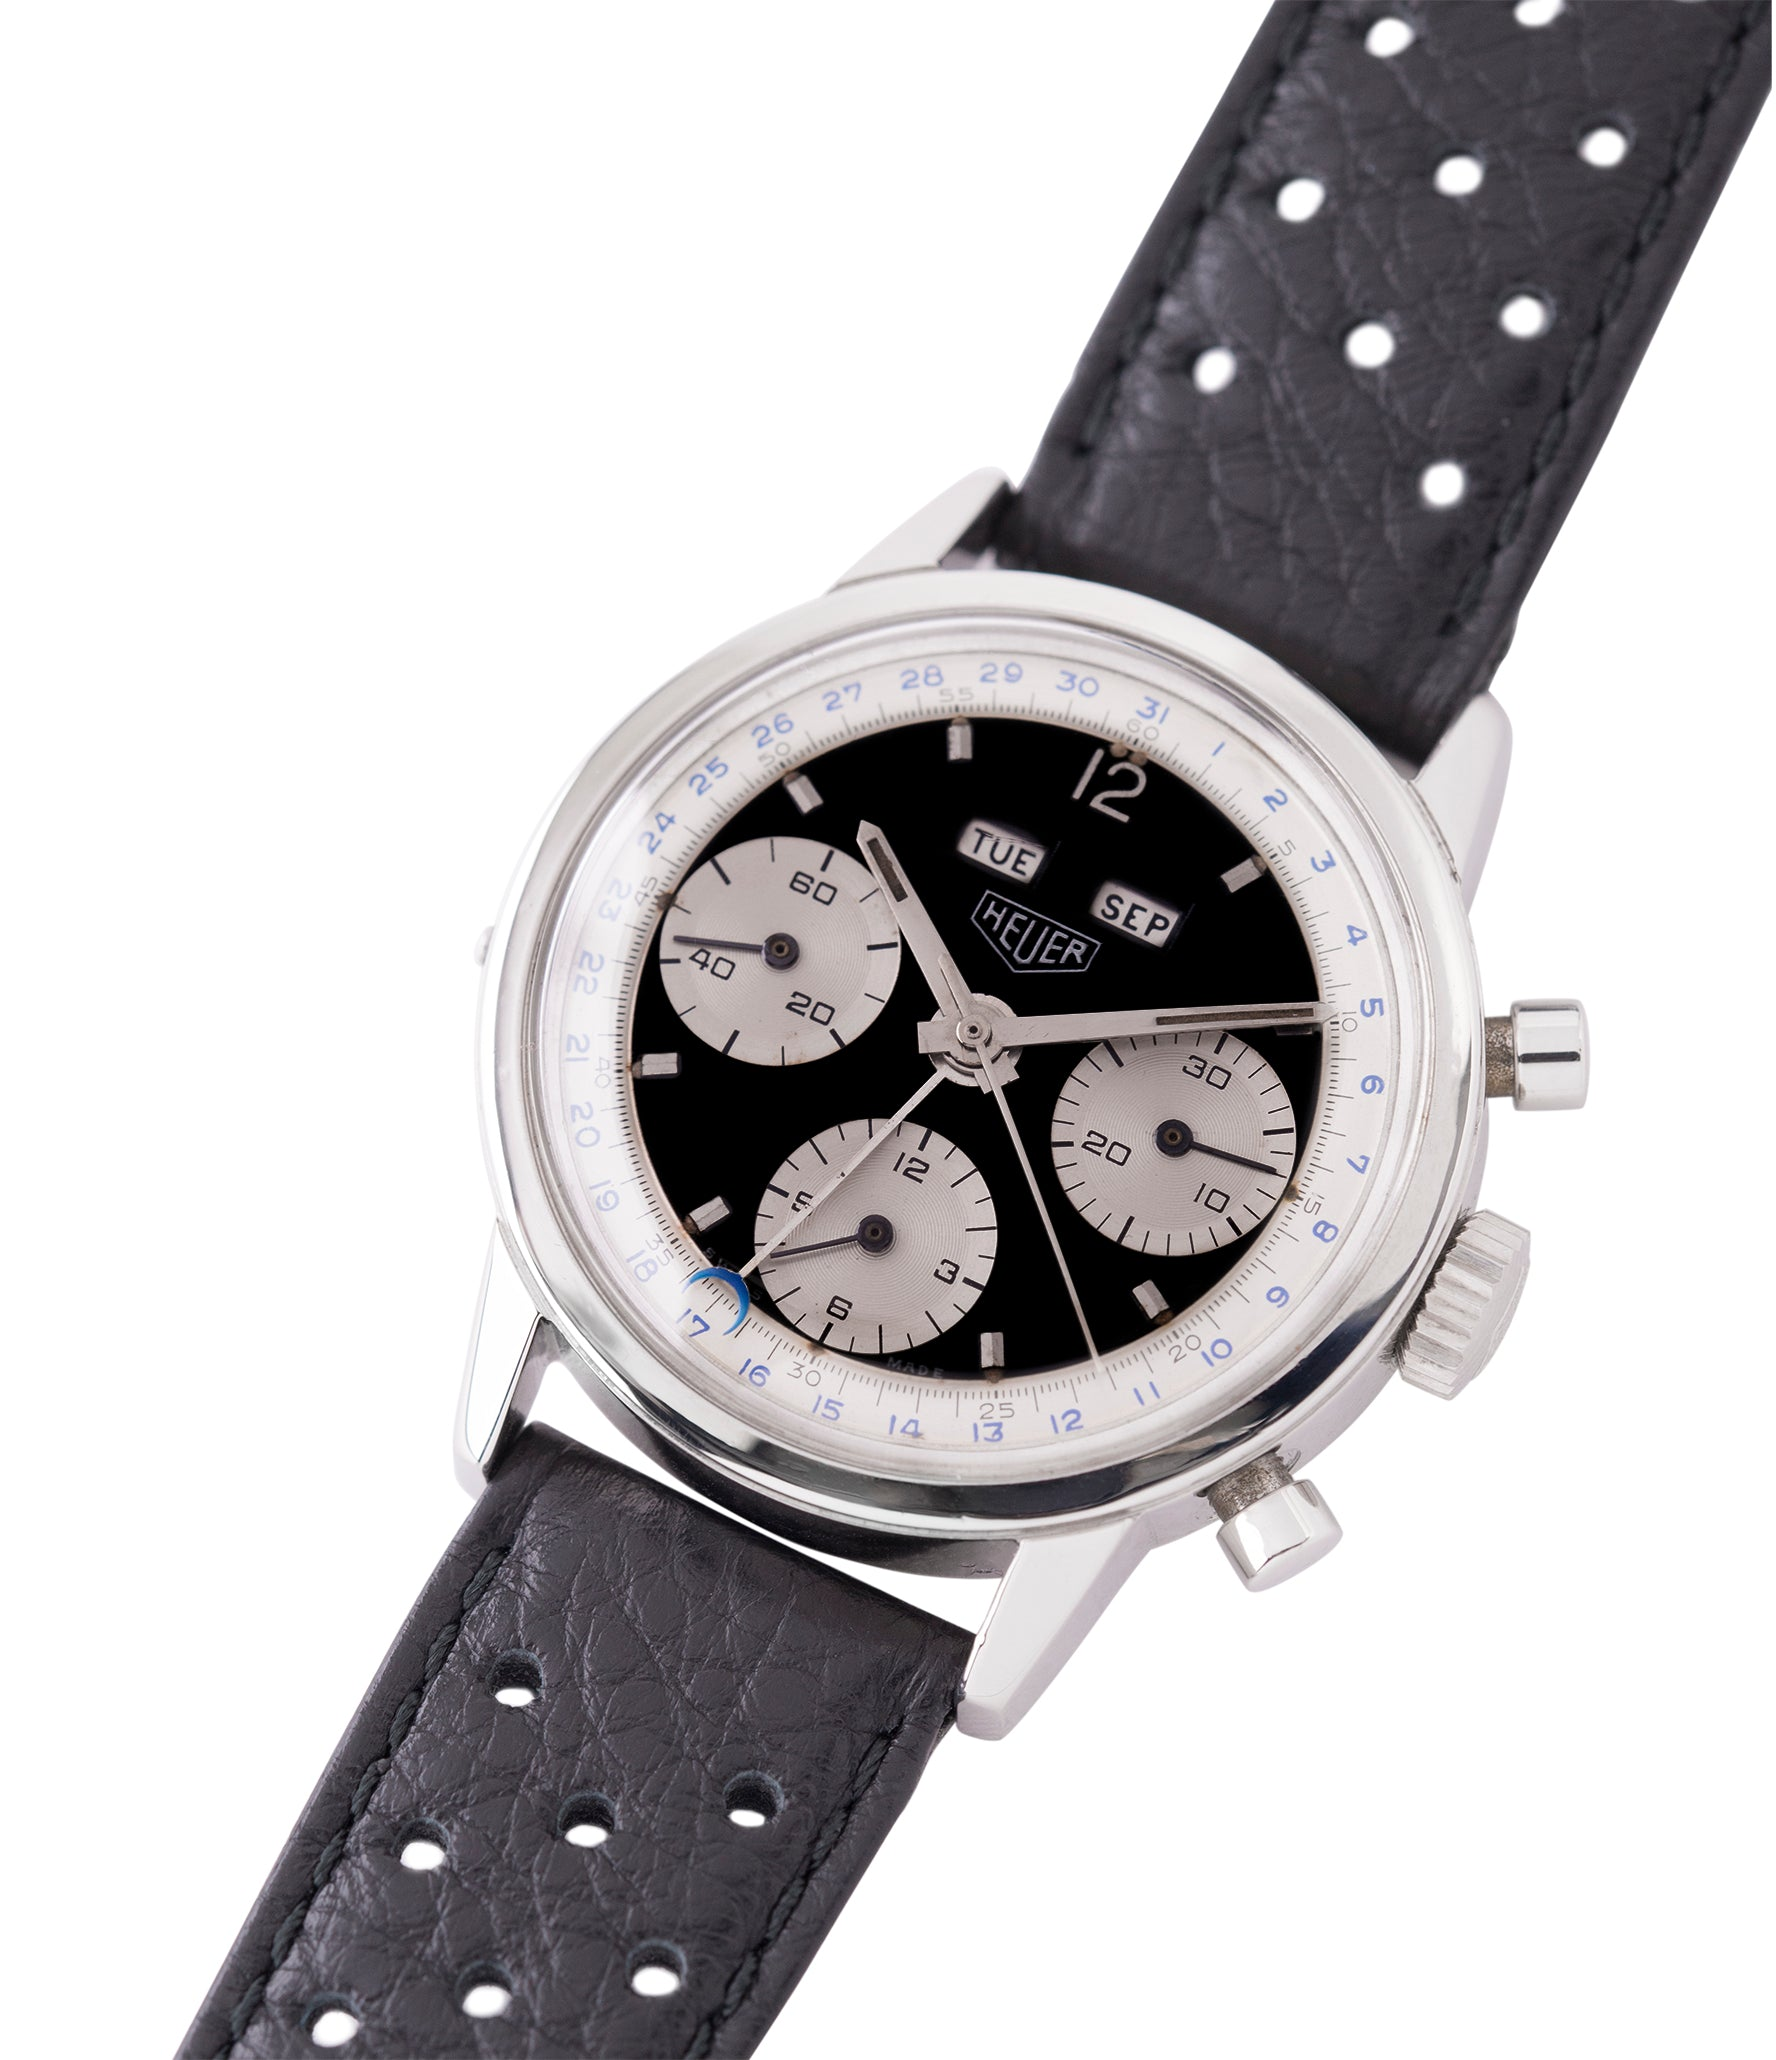 vintage Heuer Carrera 2546NS Dato 12 panda dial triple calendar chronograph most complicated Heuer watch for sale online at A Collected Man London UK specialist of rare watches